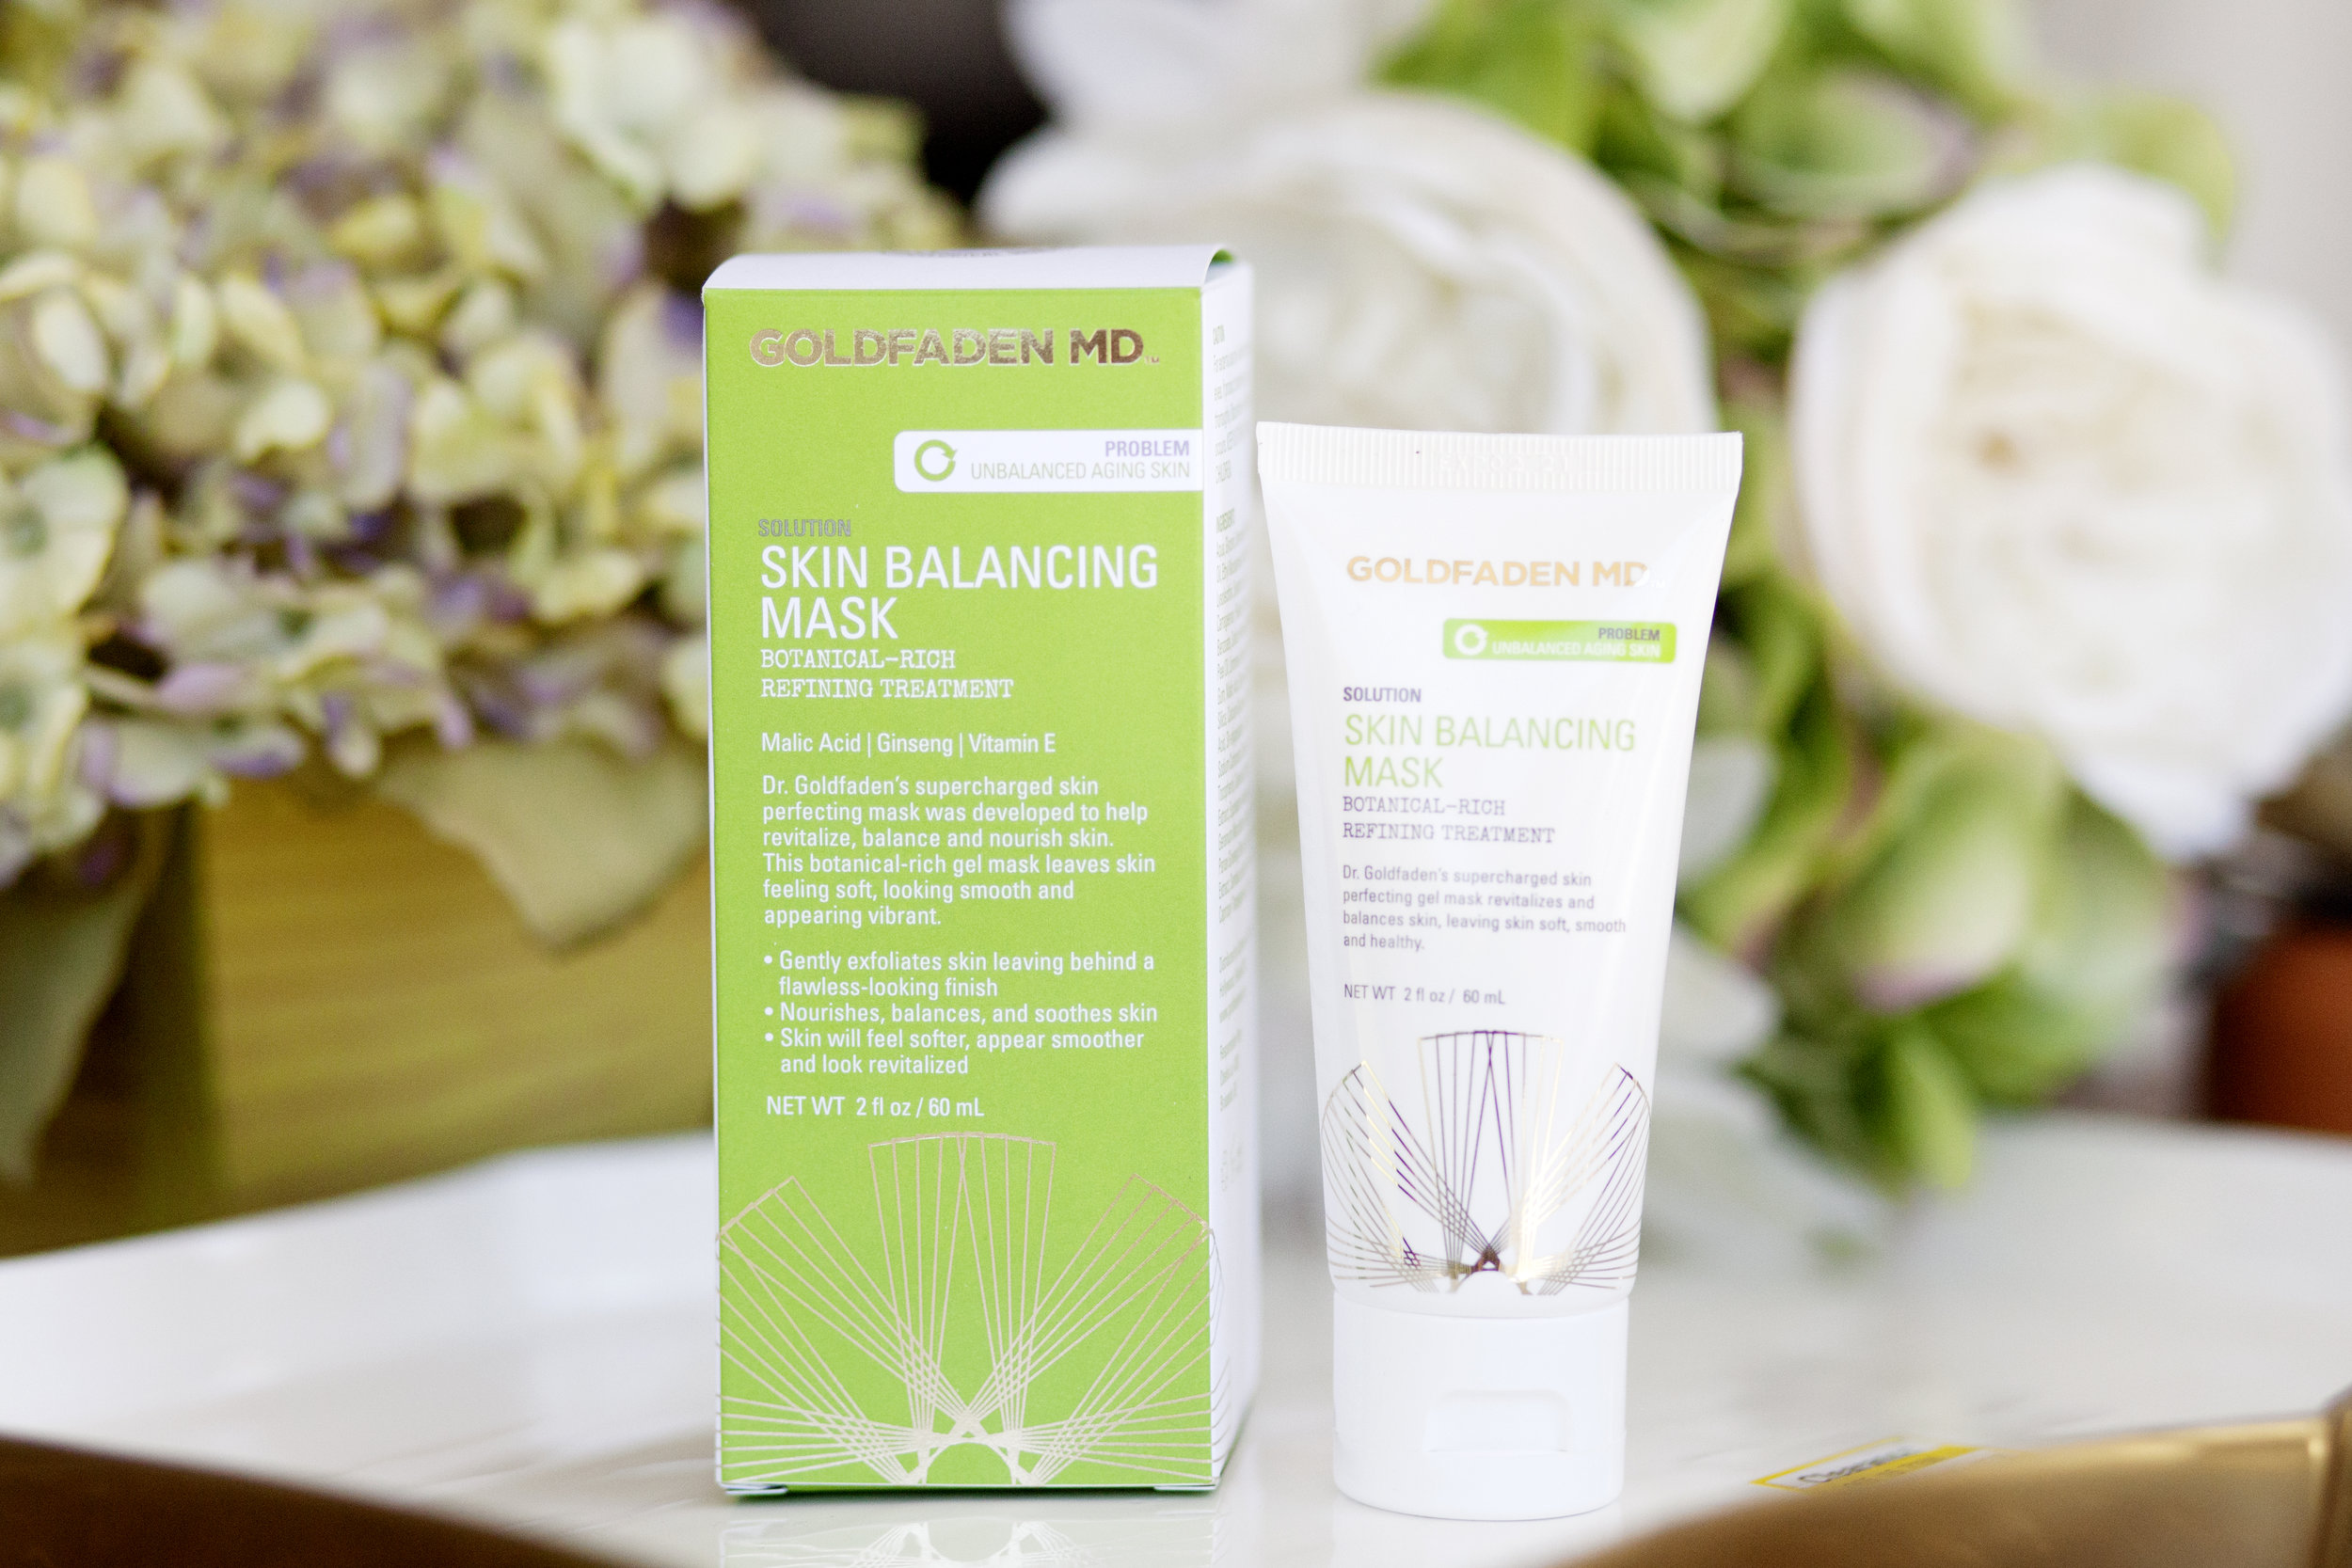 Goldfaden MD Skin Balancing Mask - The Gilded Bellini